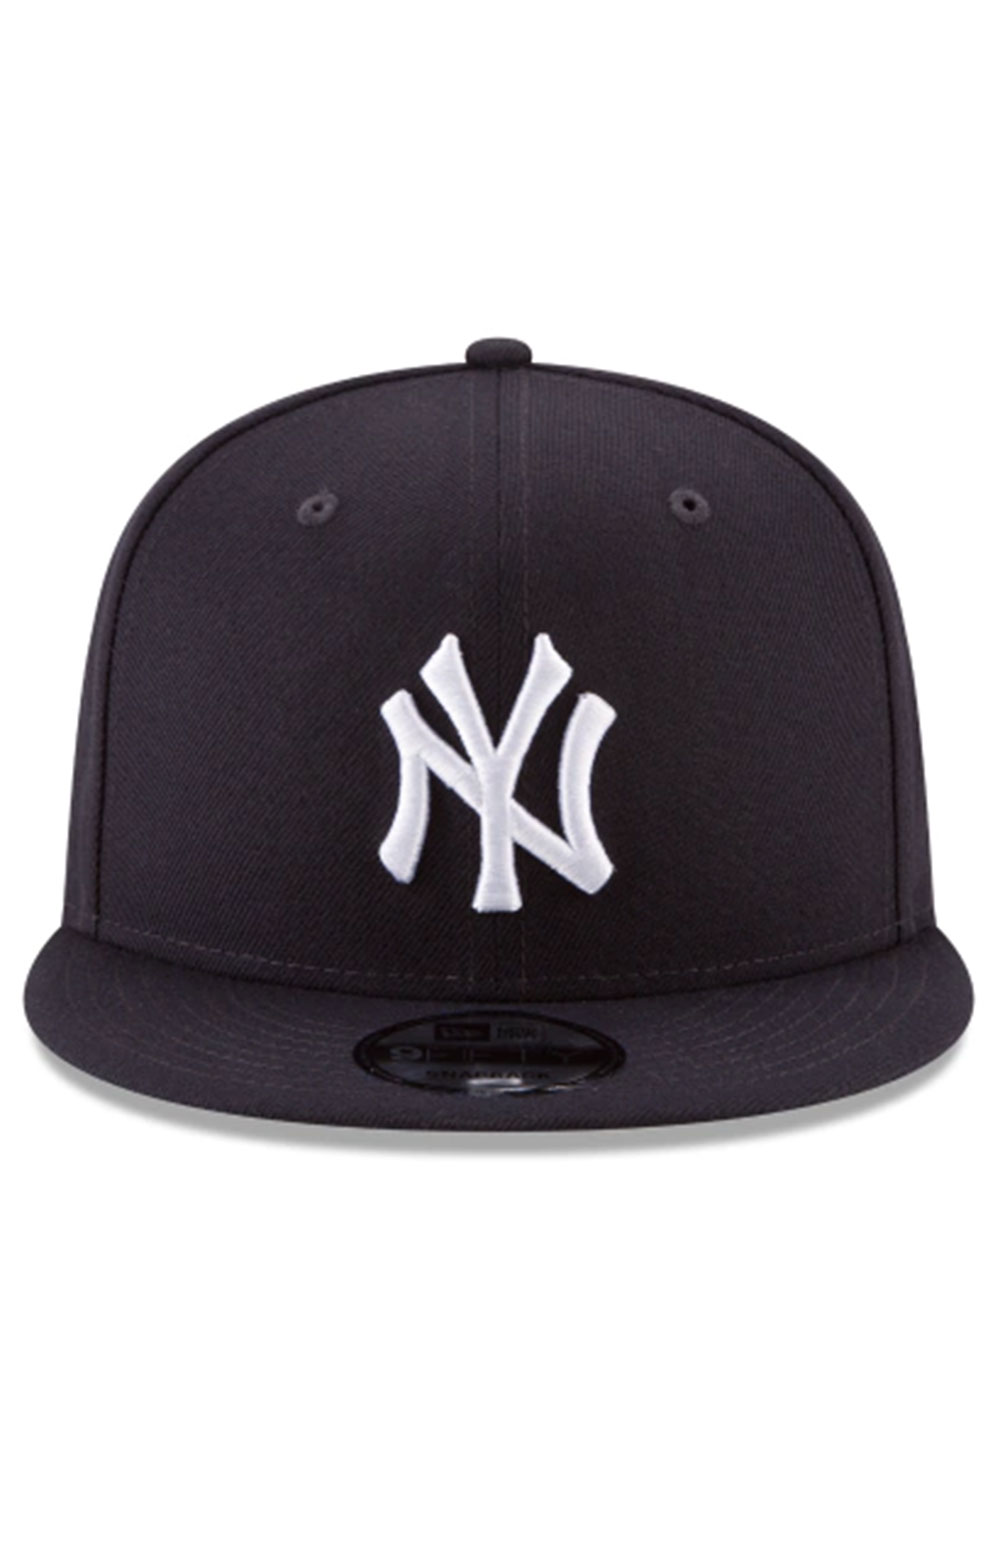 New York Yankees Team Color Basic 9Fifty Snap-Back Hat  4